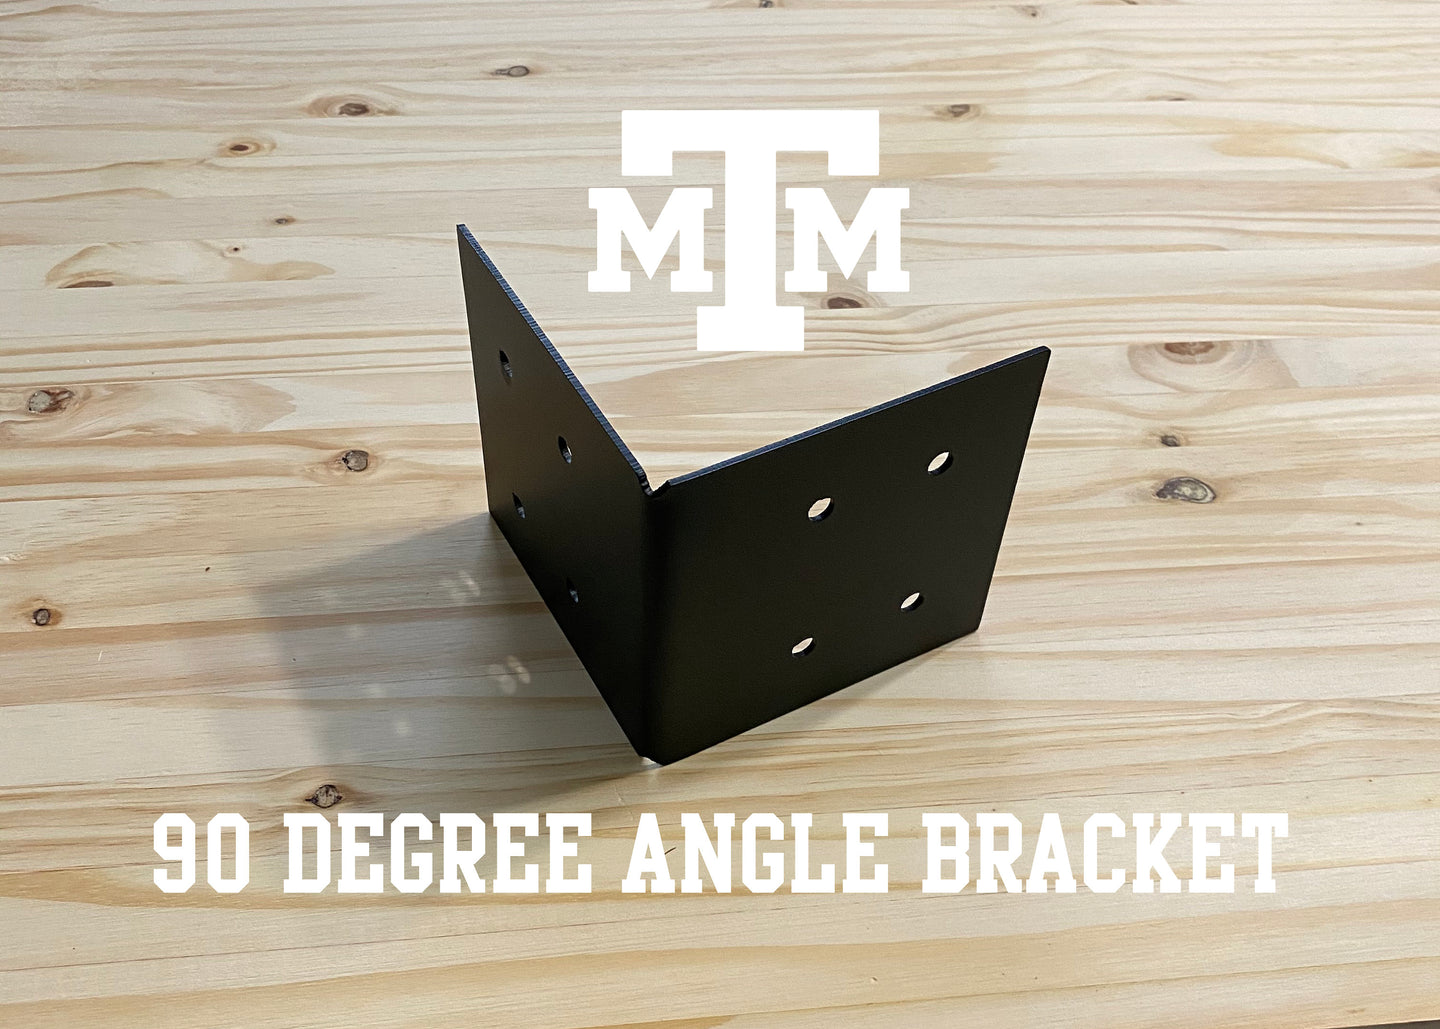 90 Degree Angle Bracket for 8